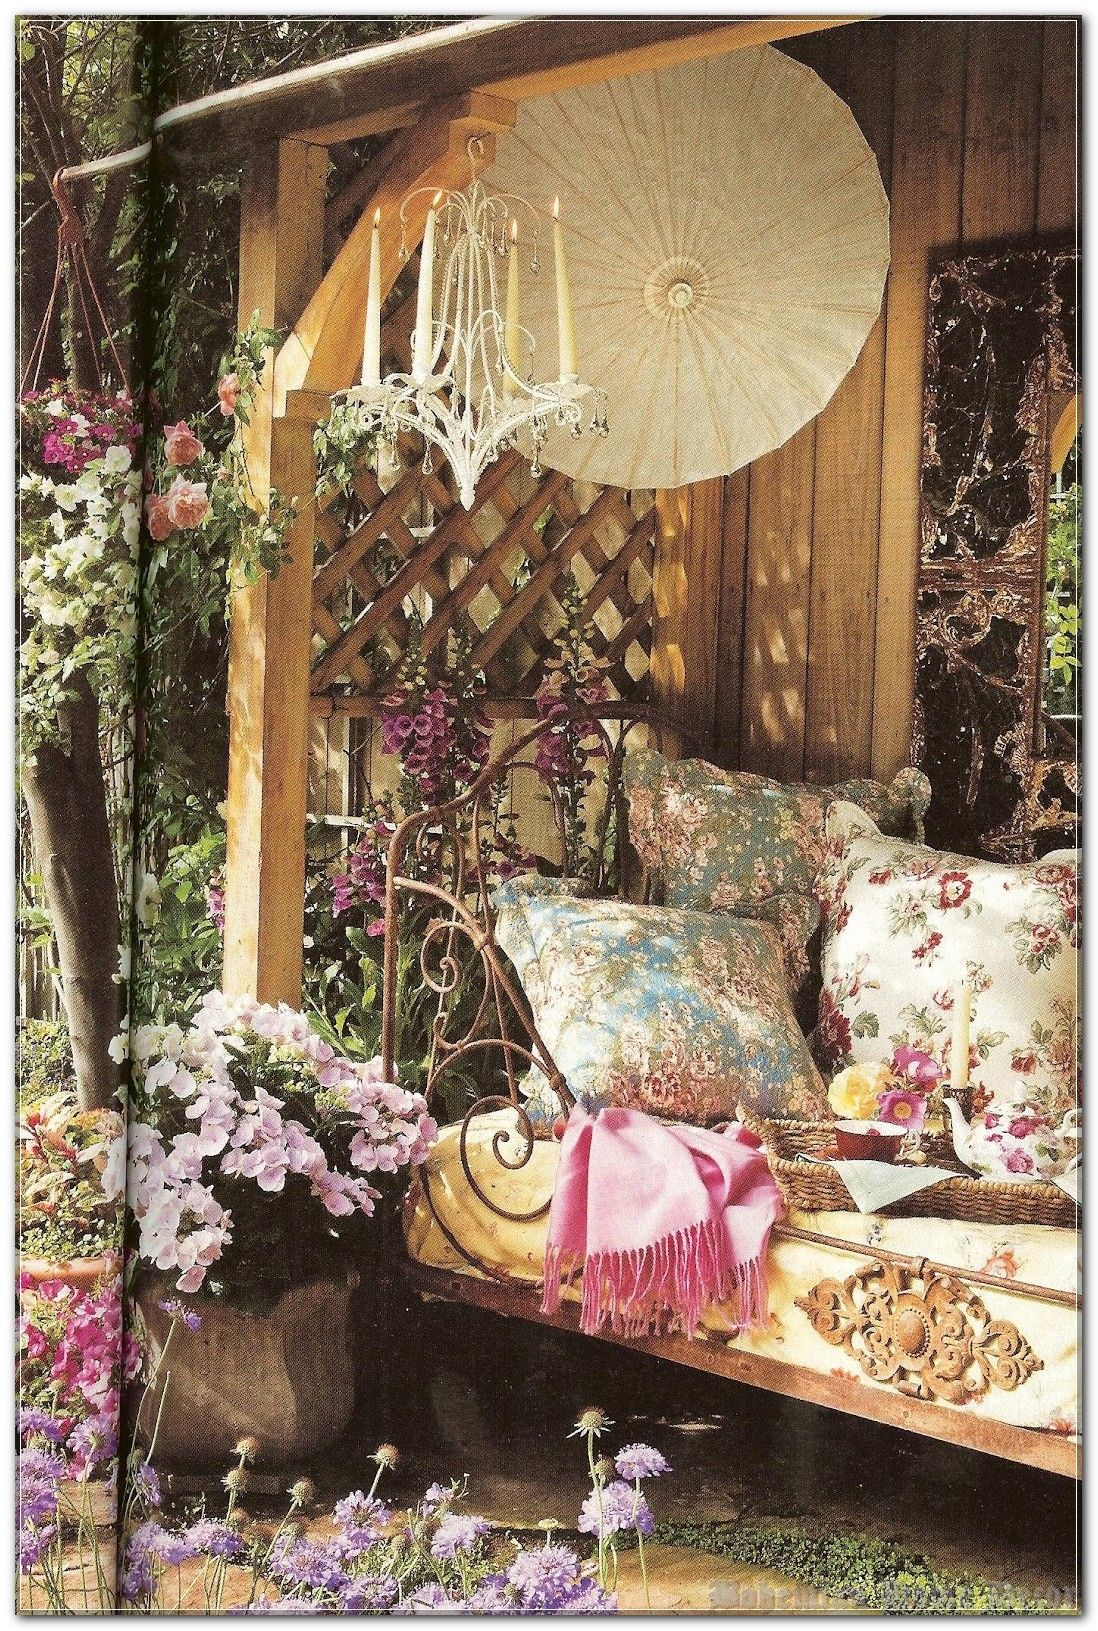 Savvy|Smart|Besty People Do Bohemian Home Decor :)